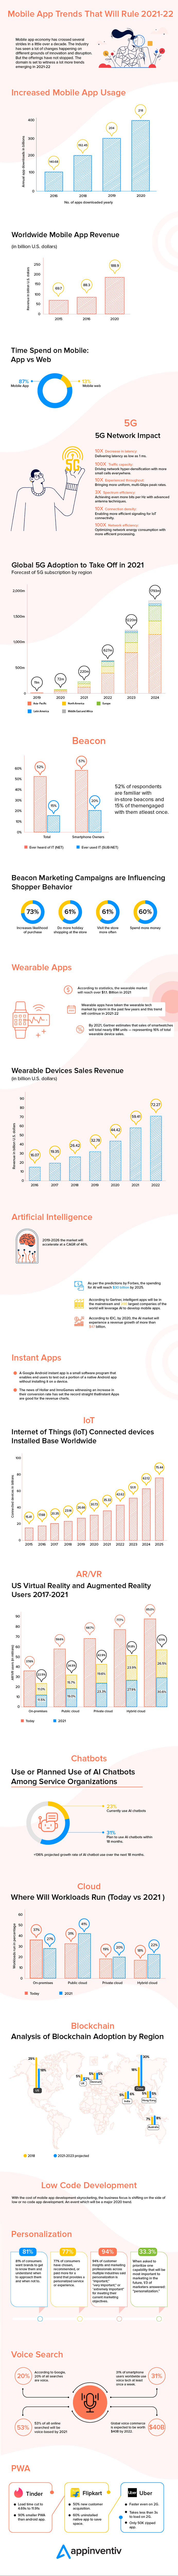 21 Striking Mobile App Trends That Will Rule 2021-22 {Infographic}